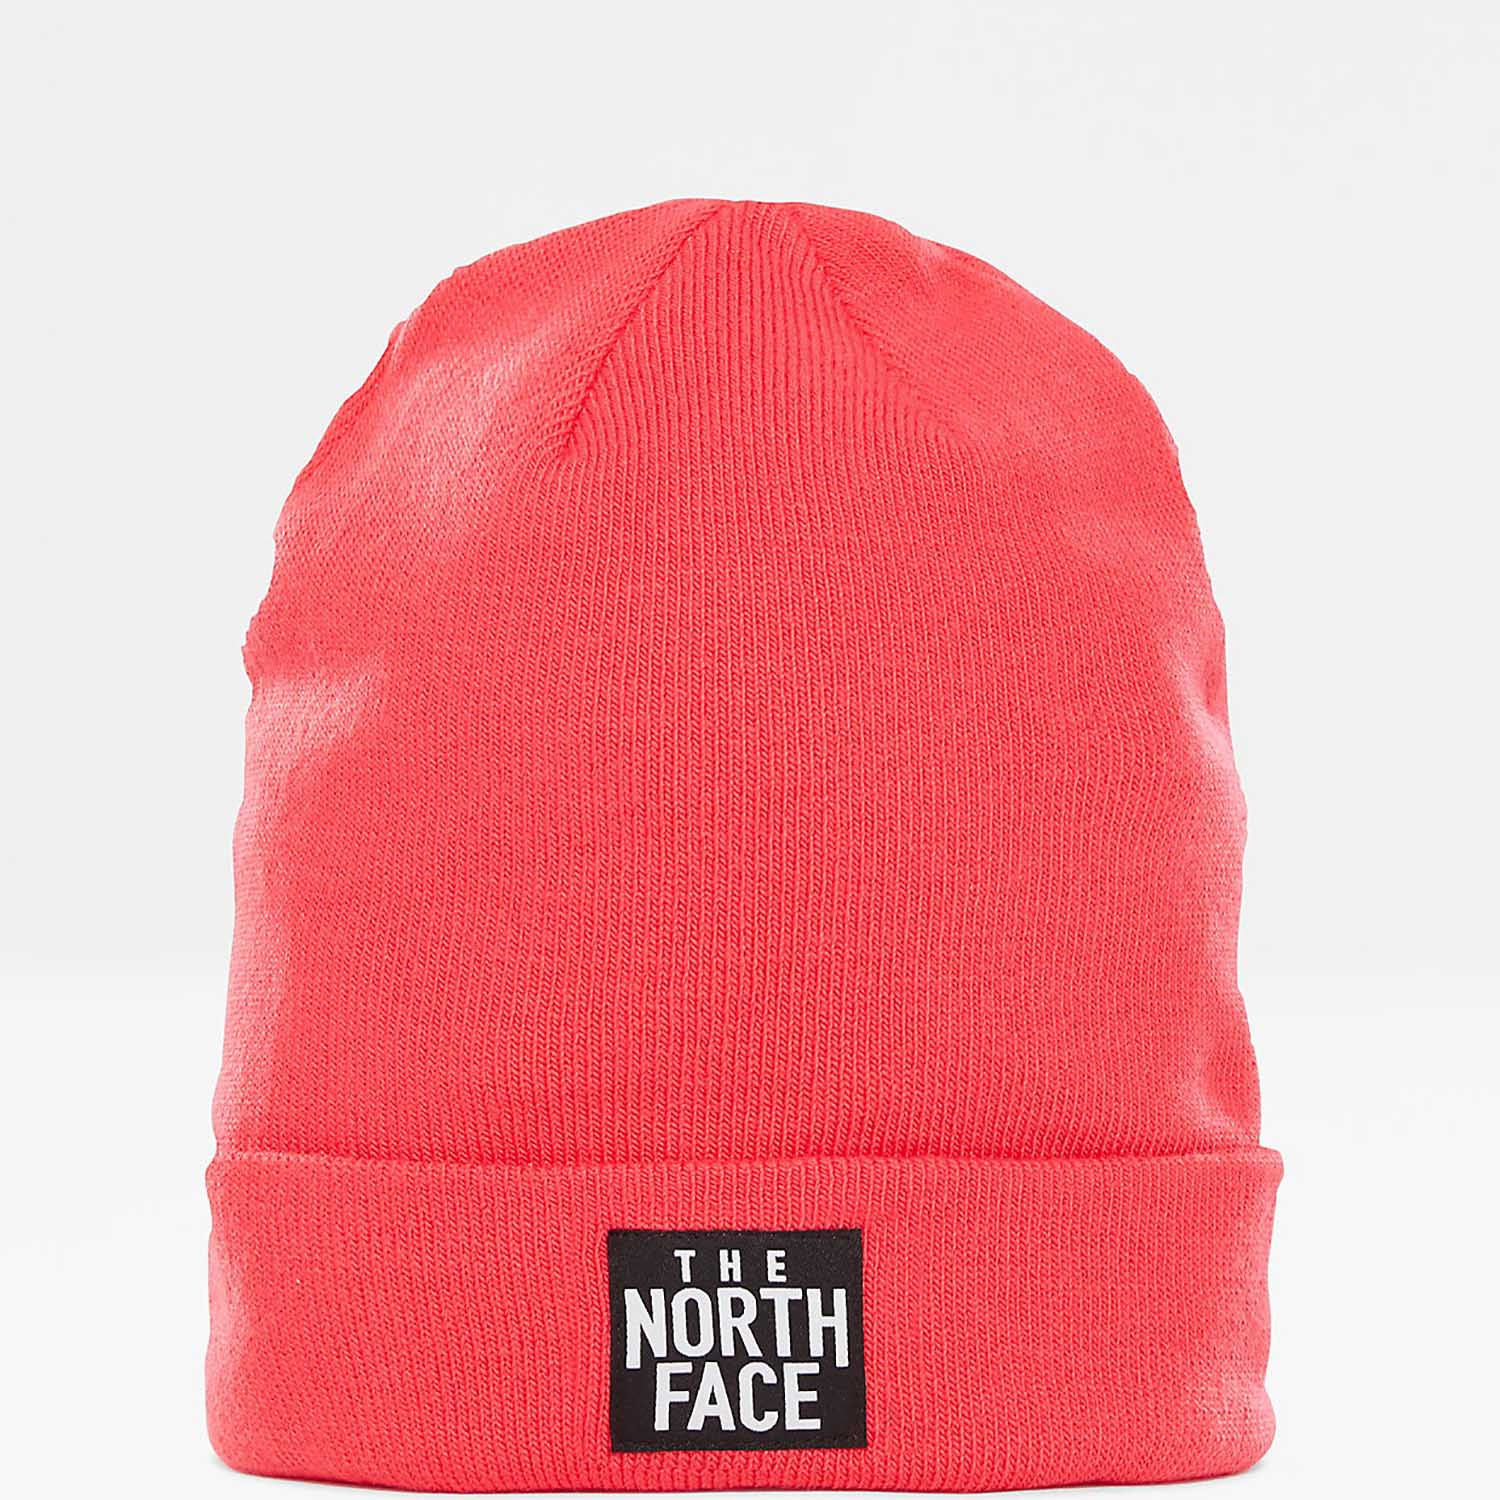 THE NORTH FACE Women's Dock Worker Beanie (9000019687_35945)